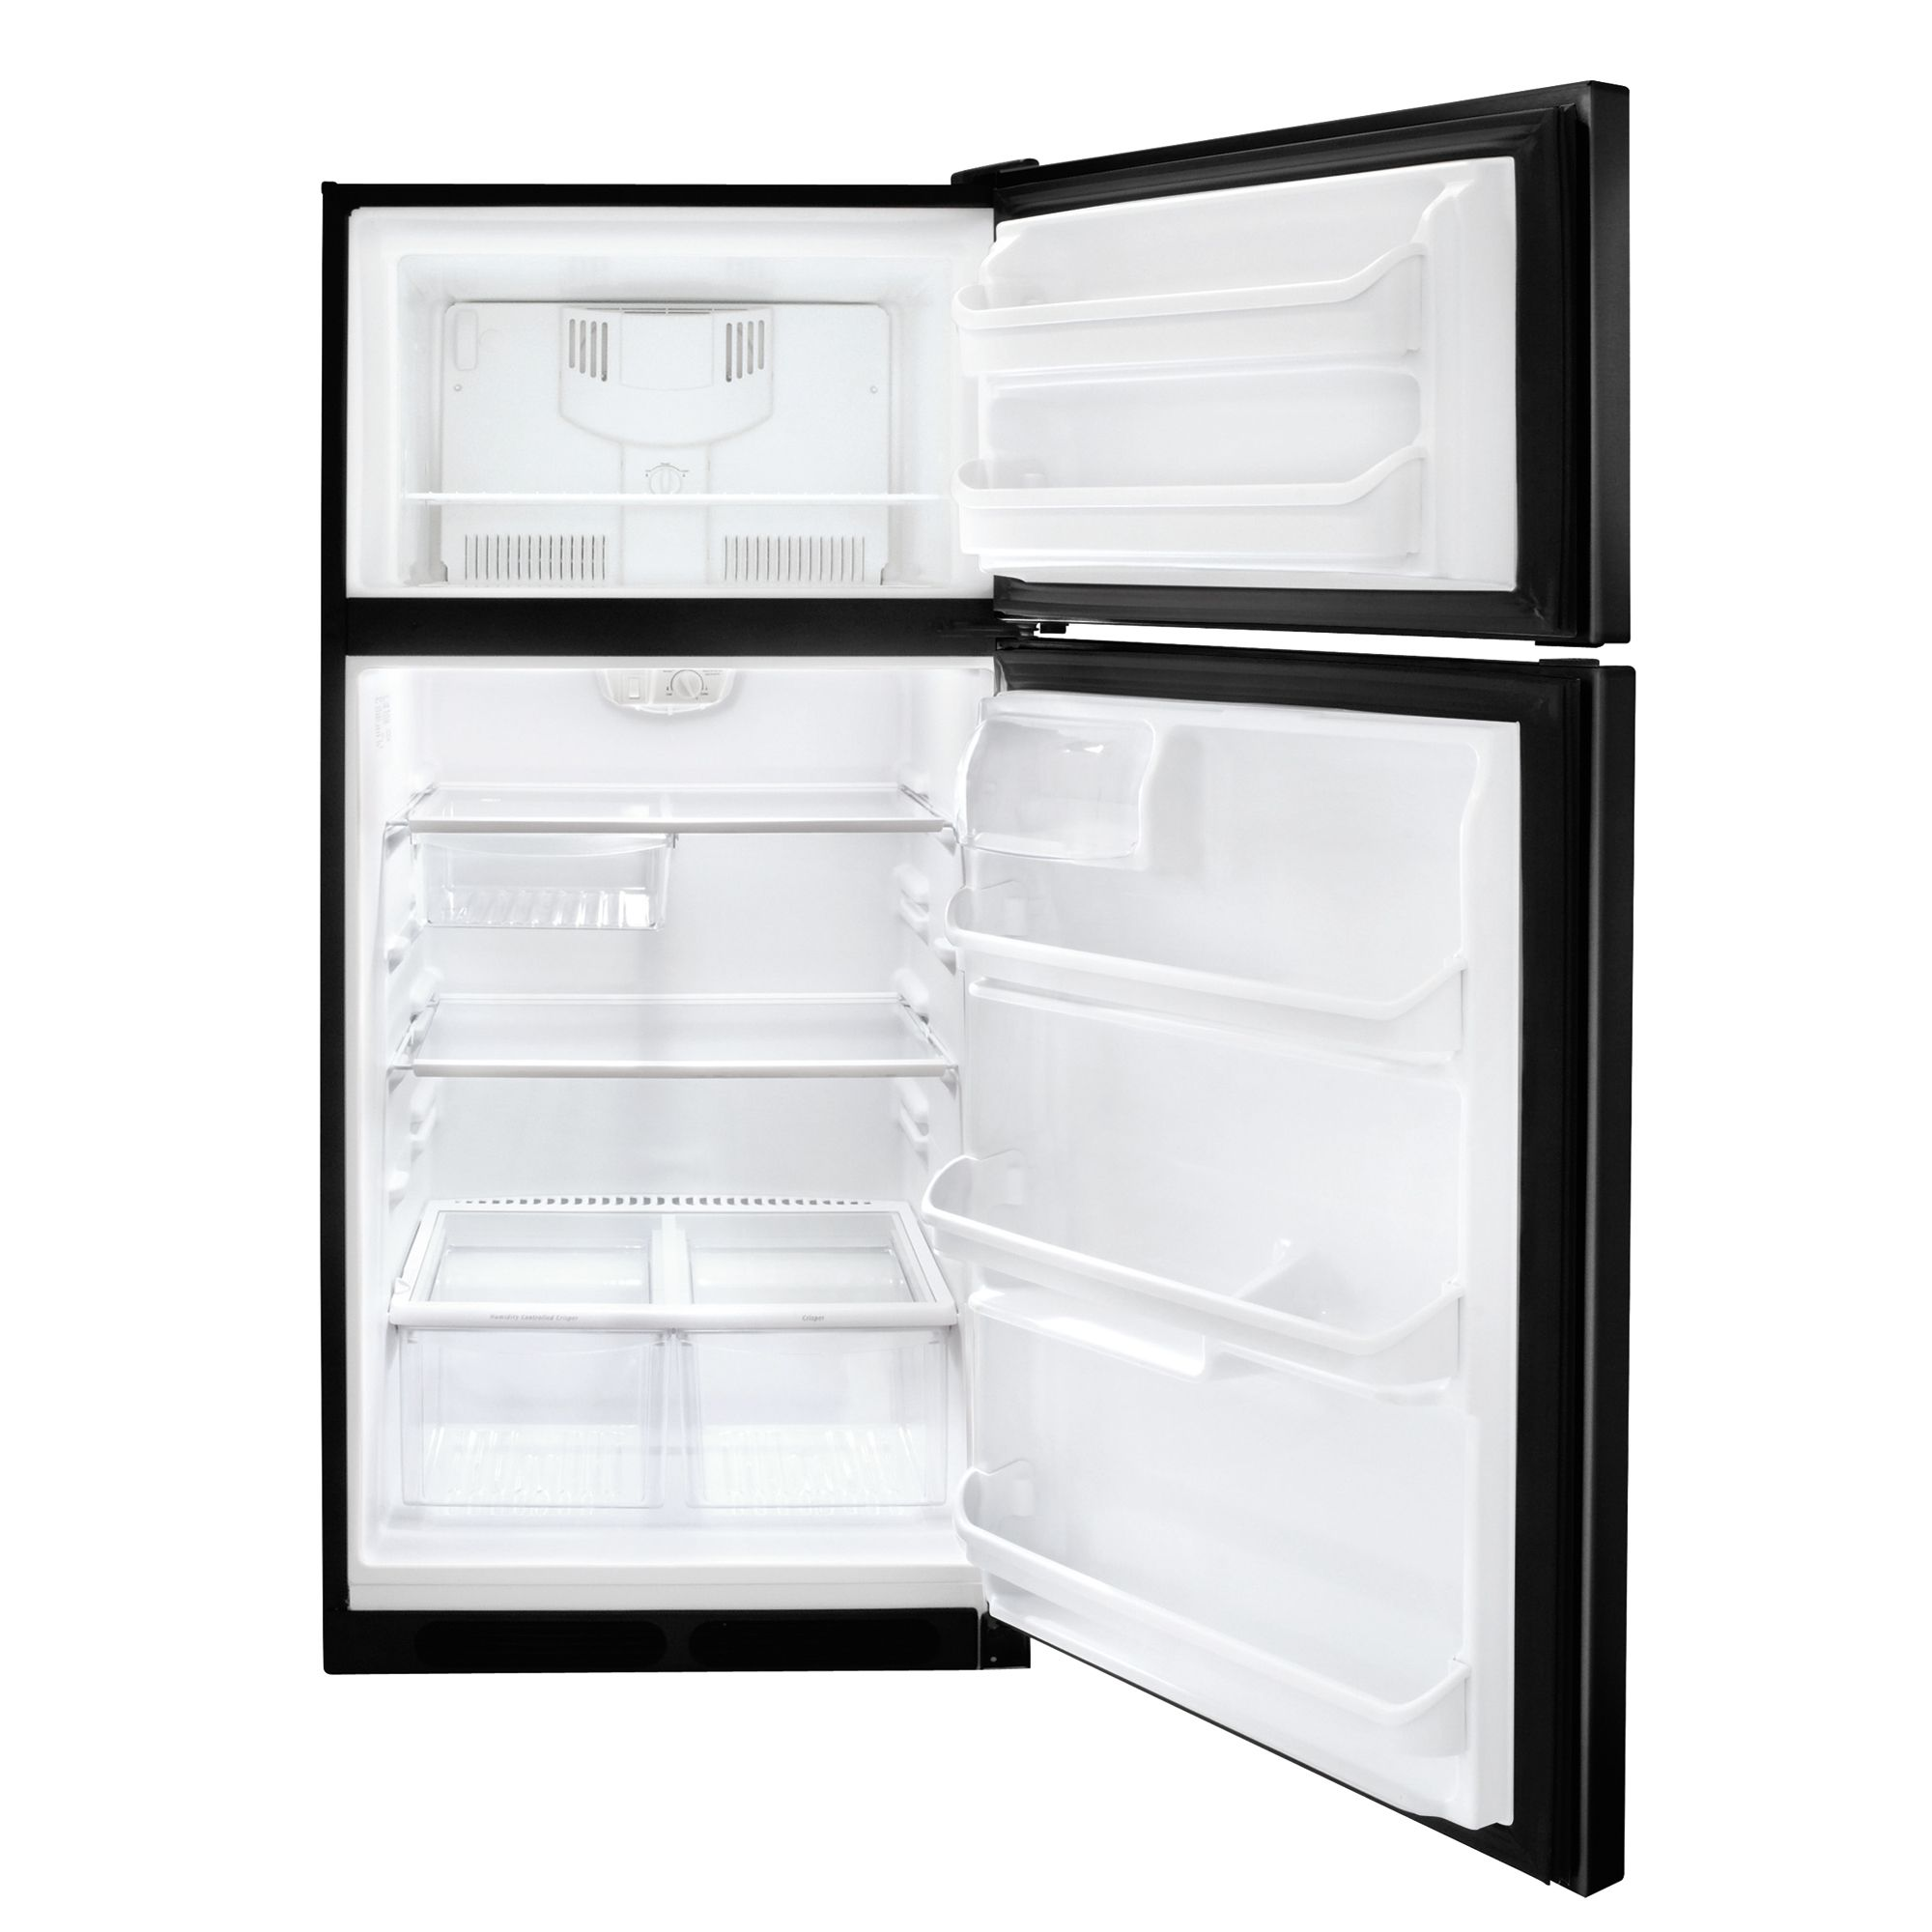 Frigidaire 18.2 cu. ft. Top Freezer Refrigerator